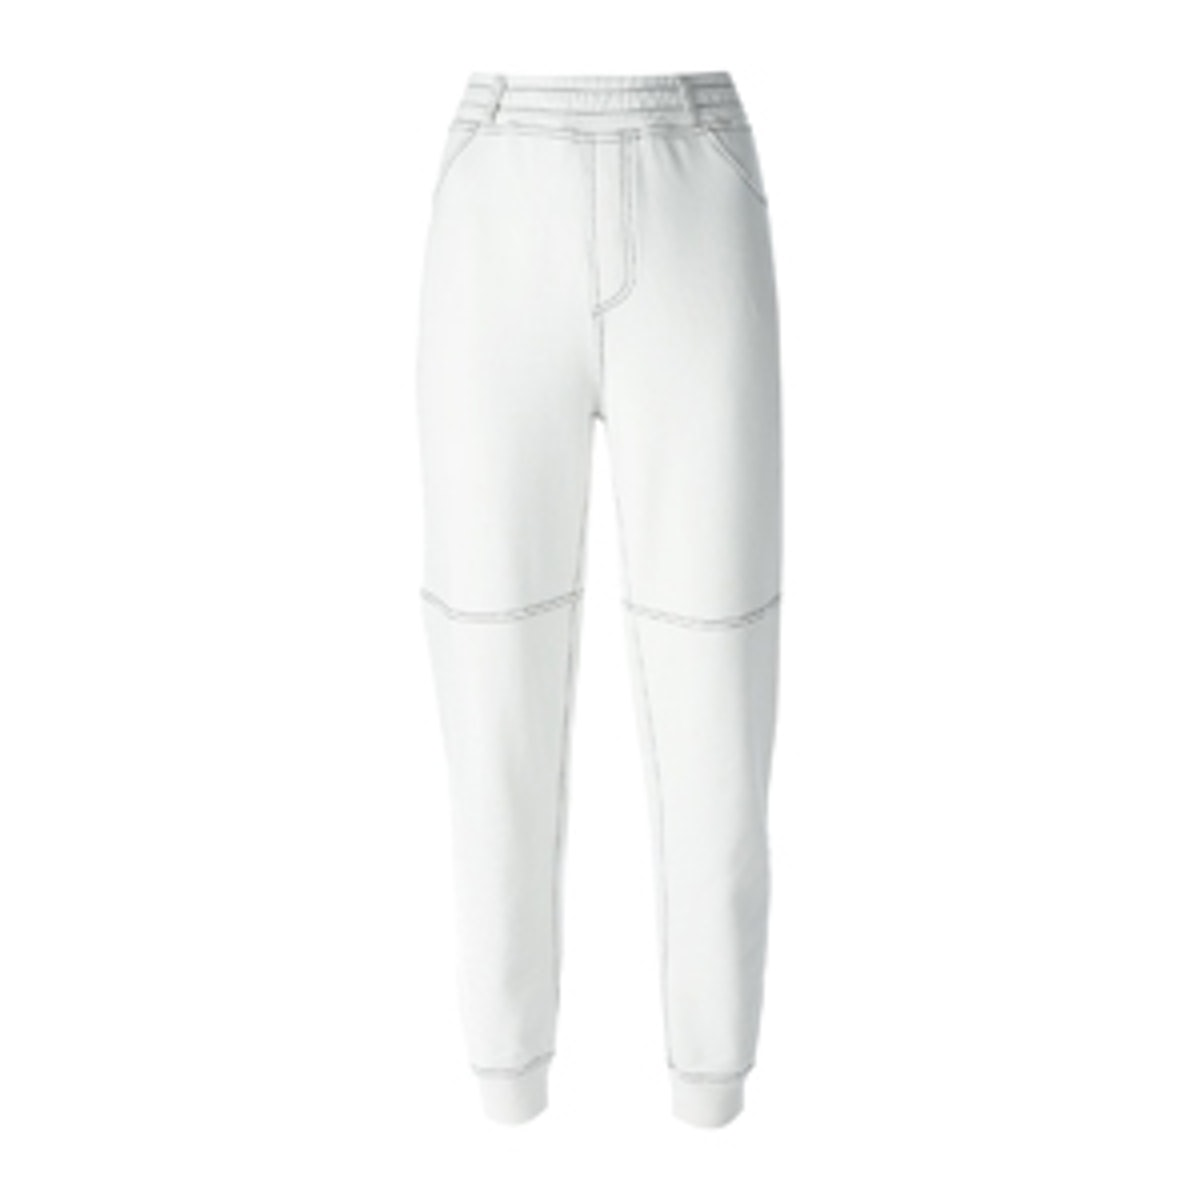 Track Pant Trousers